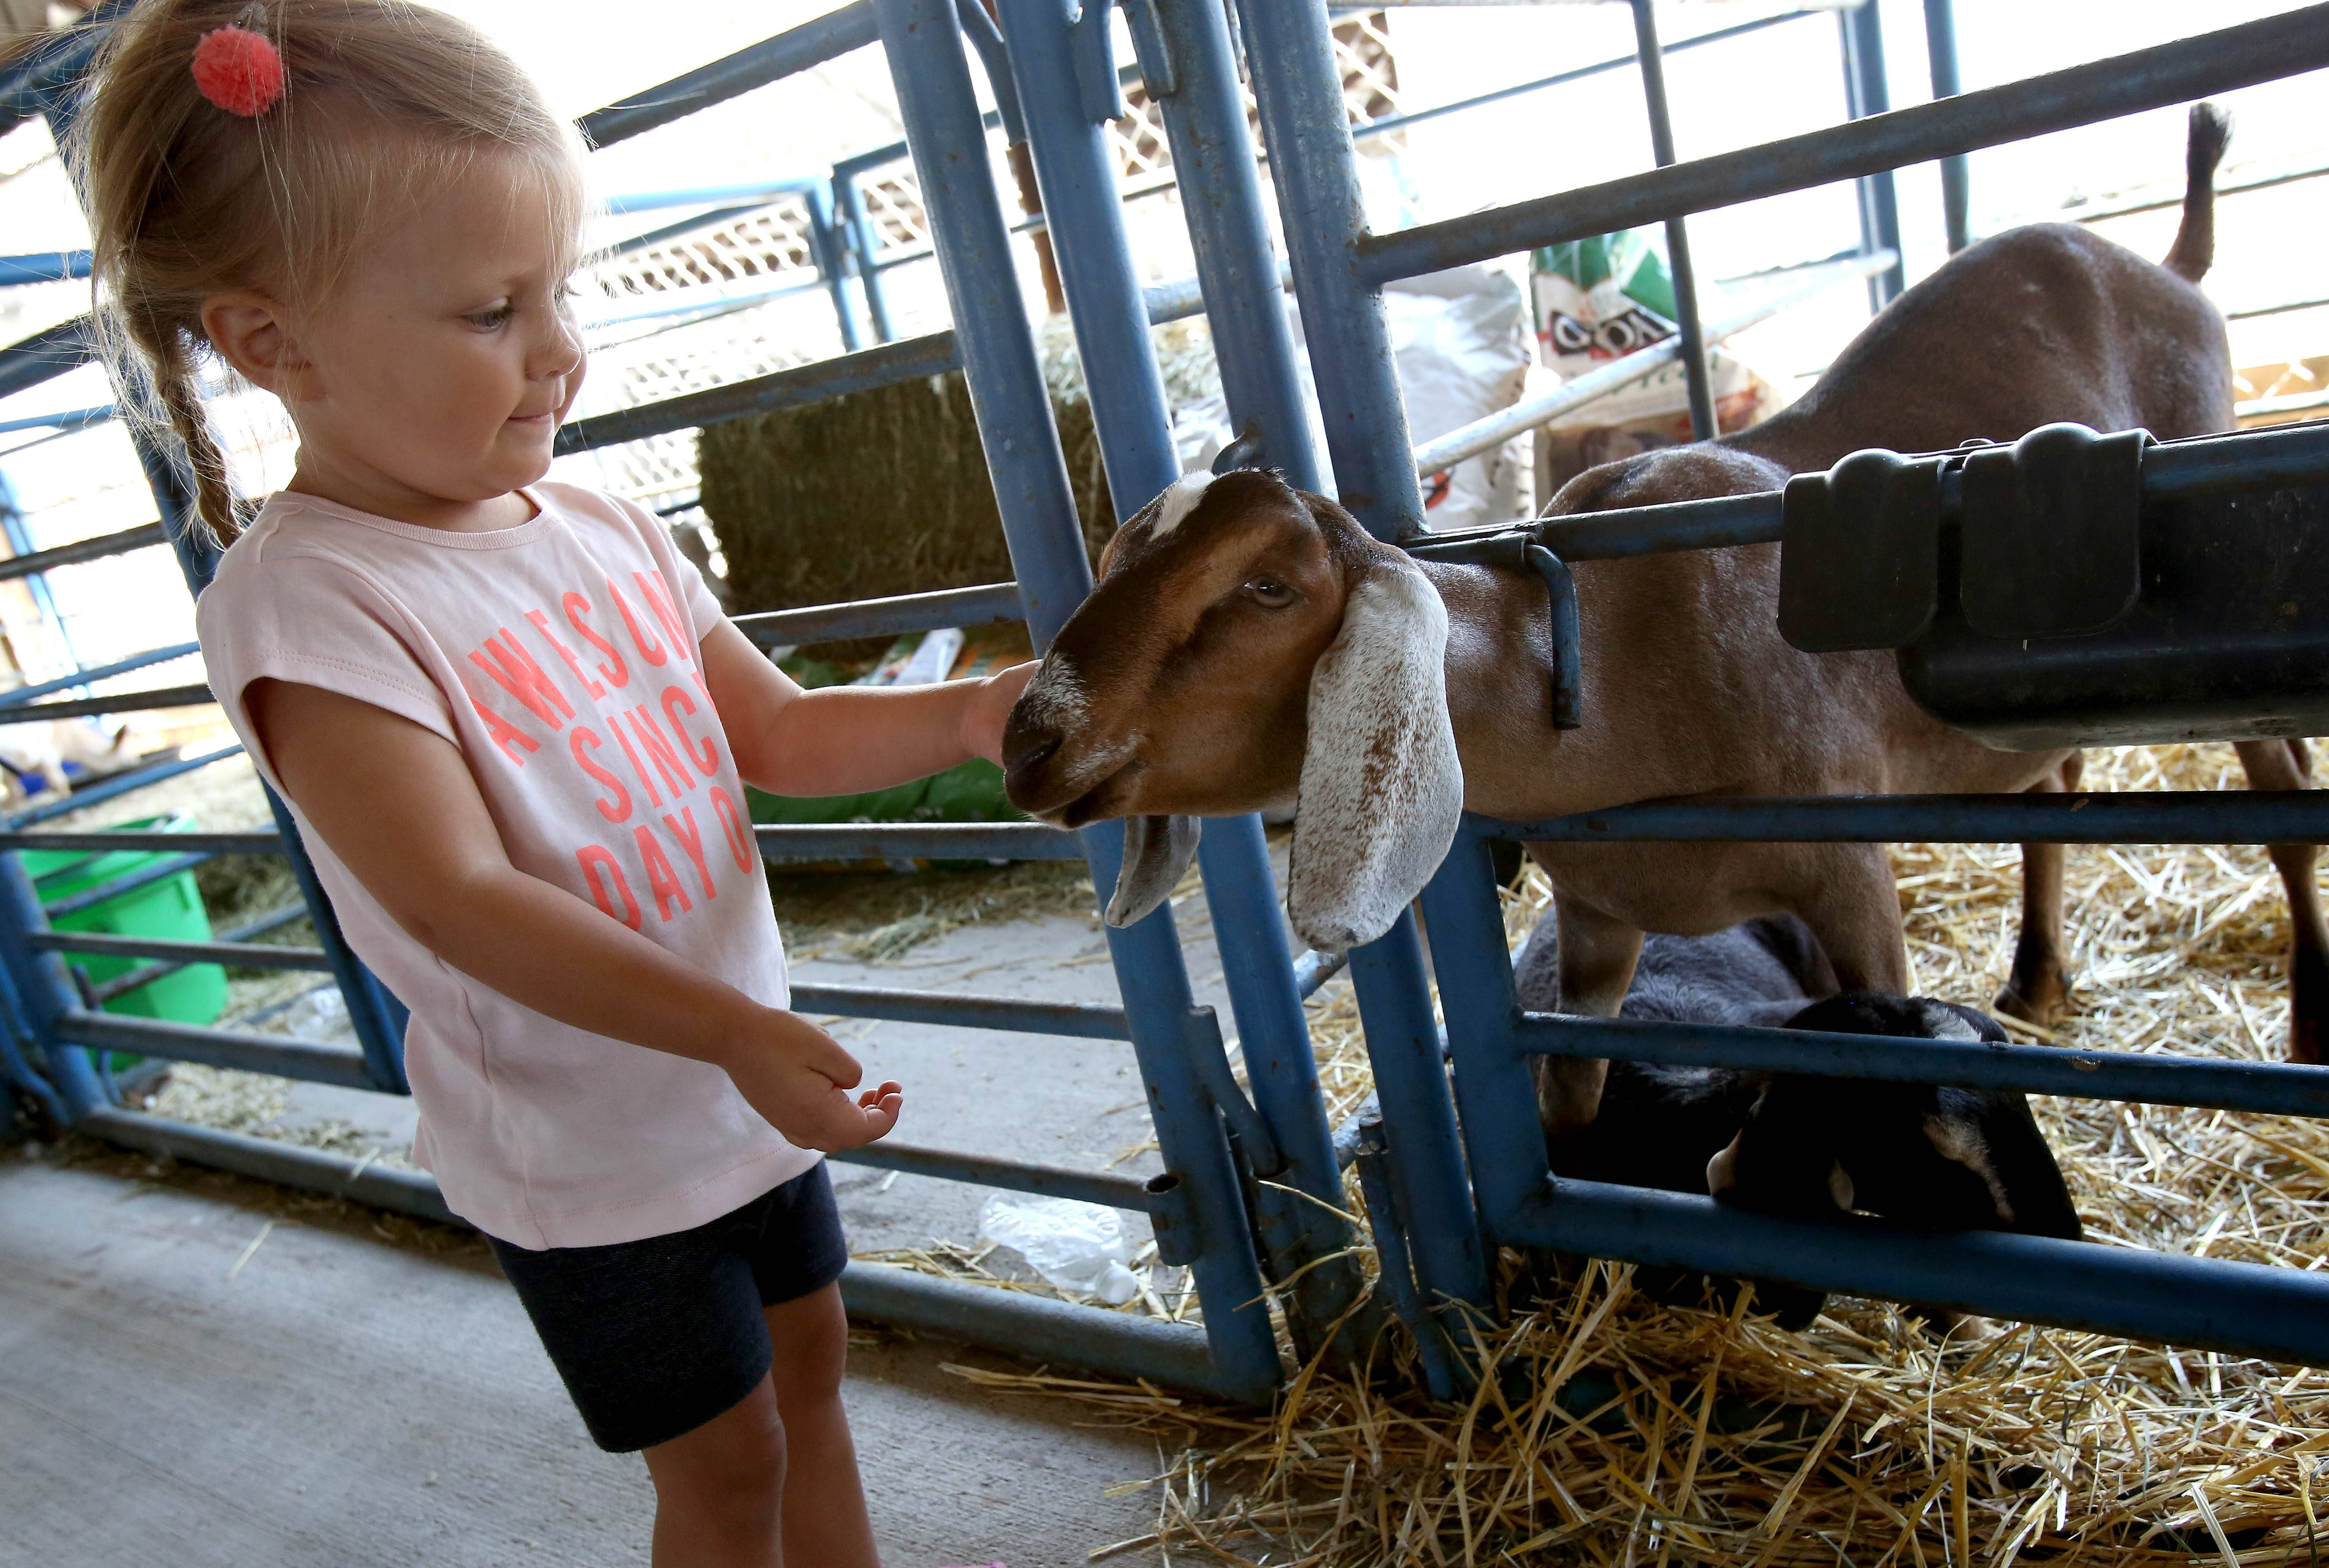 Leanna Reporto of Glendale Heights spends her third birthday visiting with the goats during opening day of the DuPage County Fair in Wheaton.